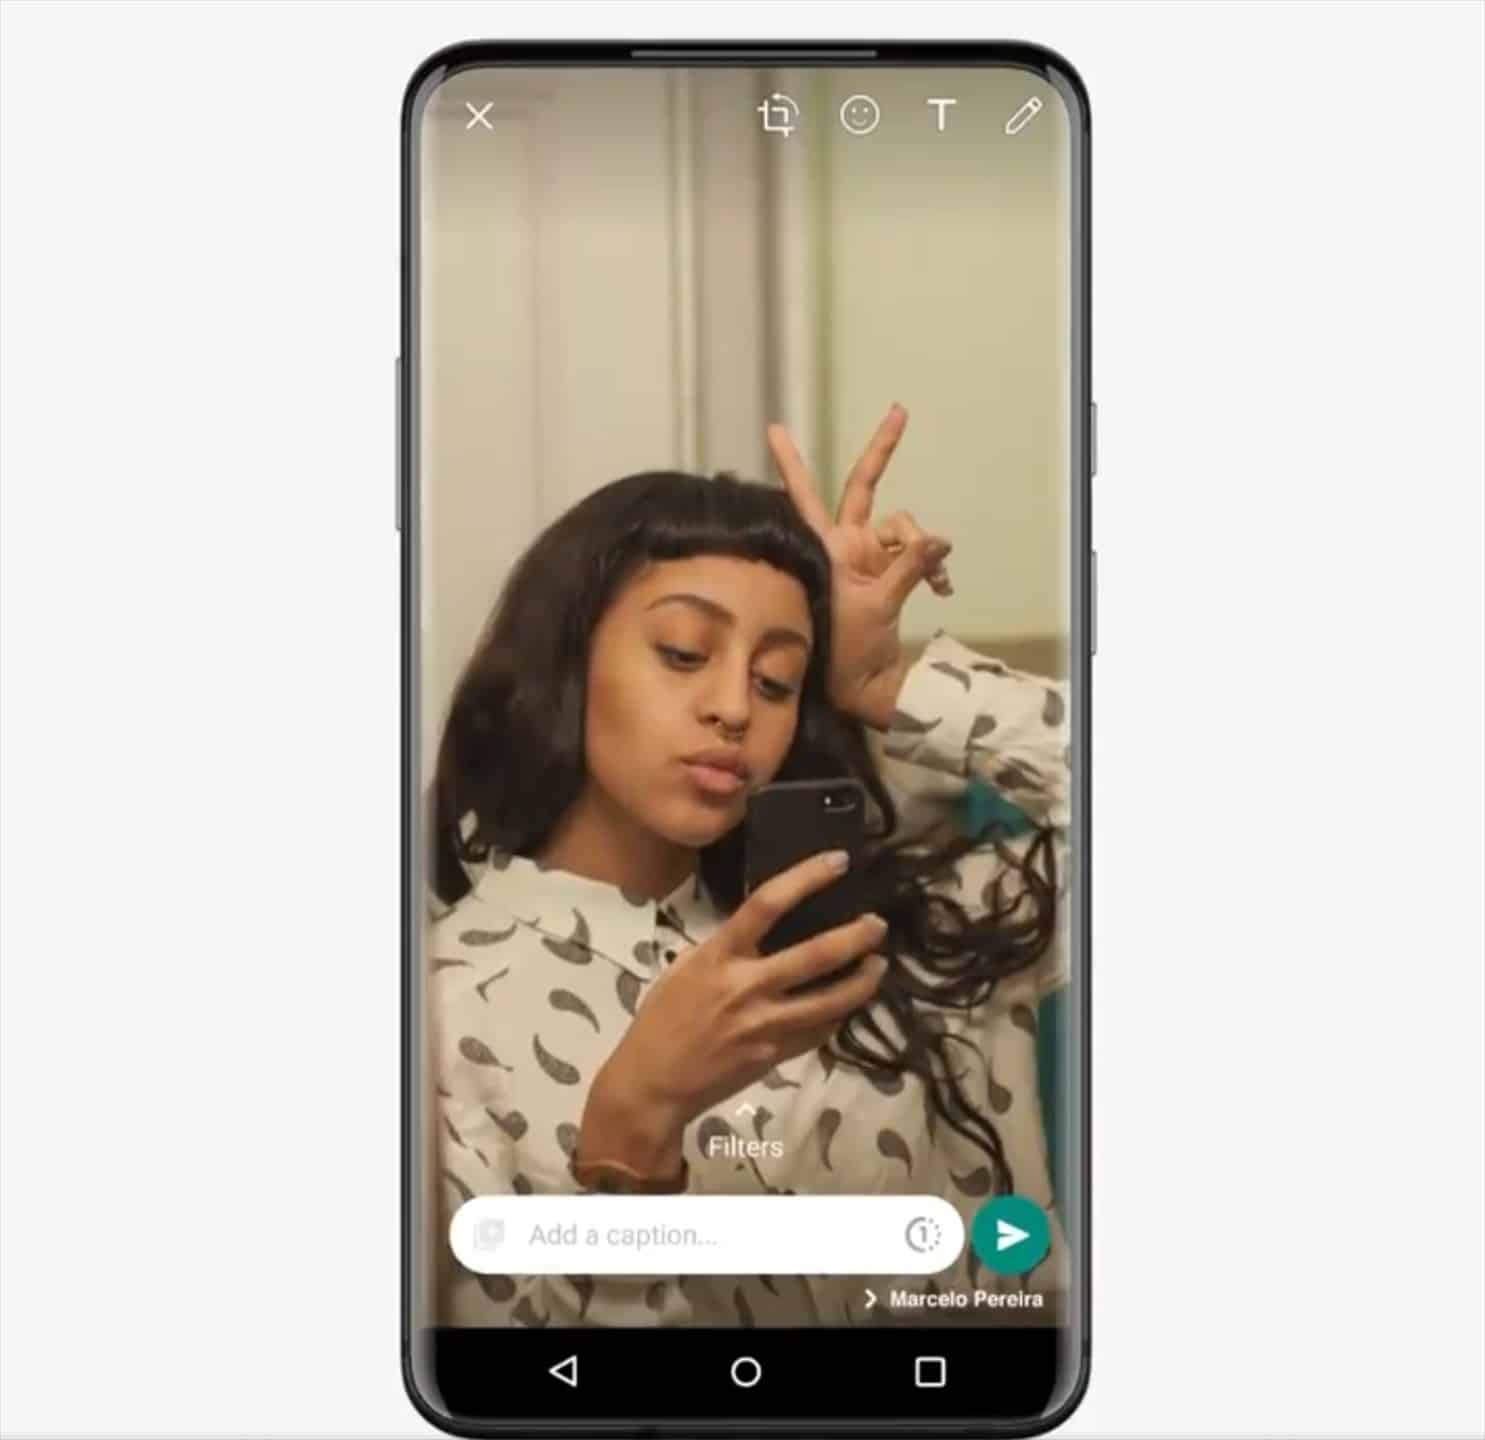 How to send photos or videos that can only be viewed once in WhatsApp